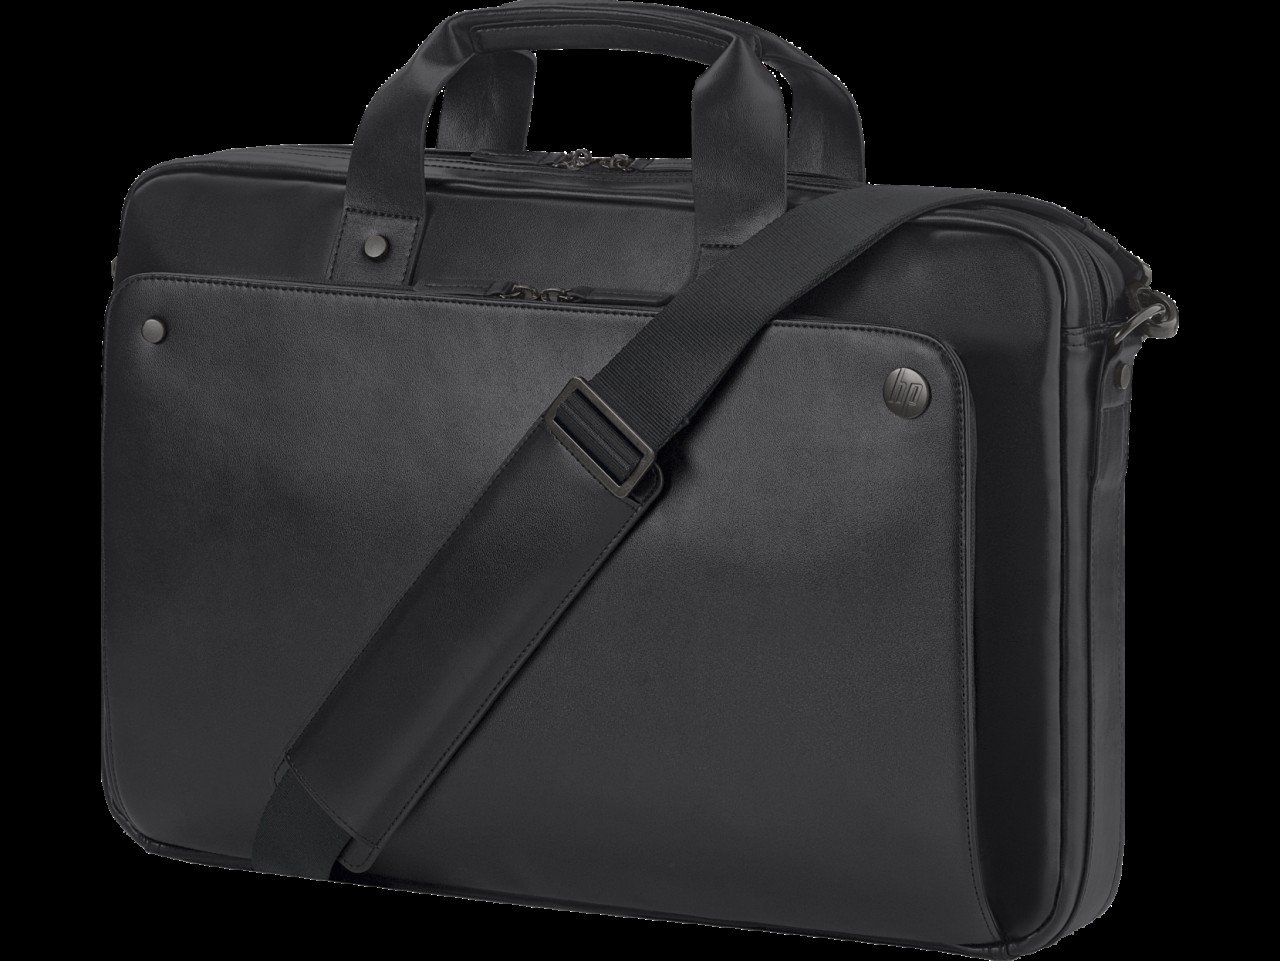 HP 1LG83AA Executive Top Load Notebook Carrying Case 15.6'', Black by HP (Image #1)